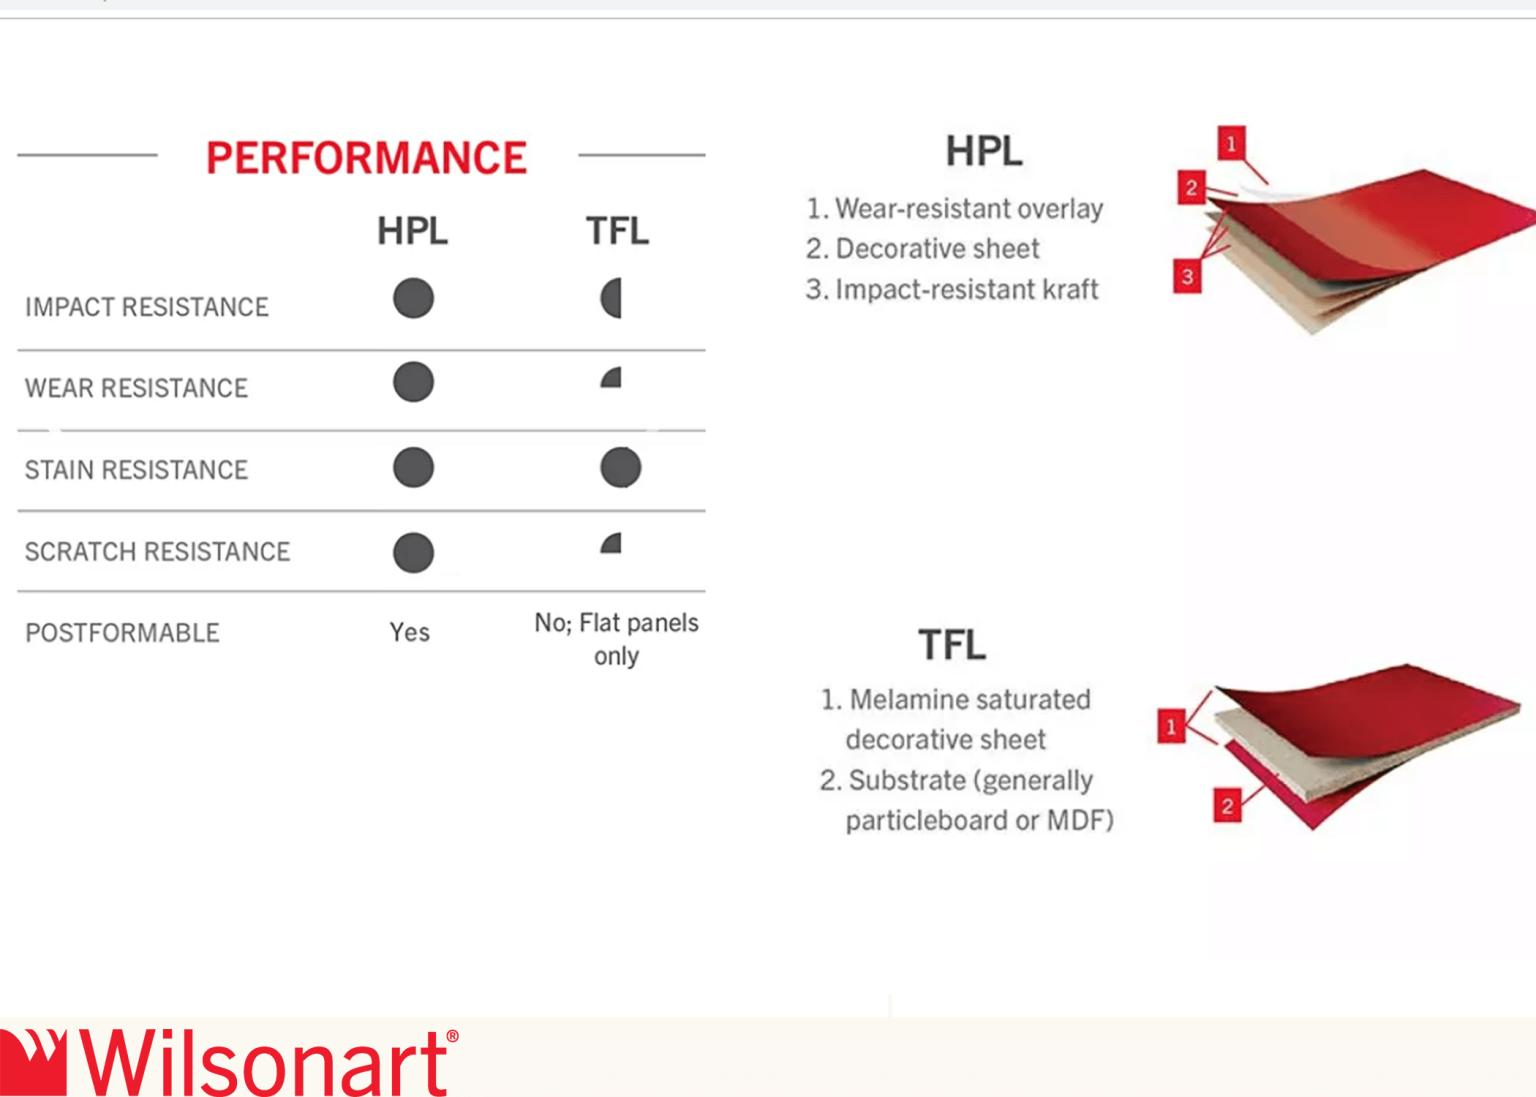 DIFFERENCE BETWEEN WILSONART HPL & TFL